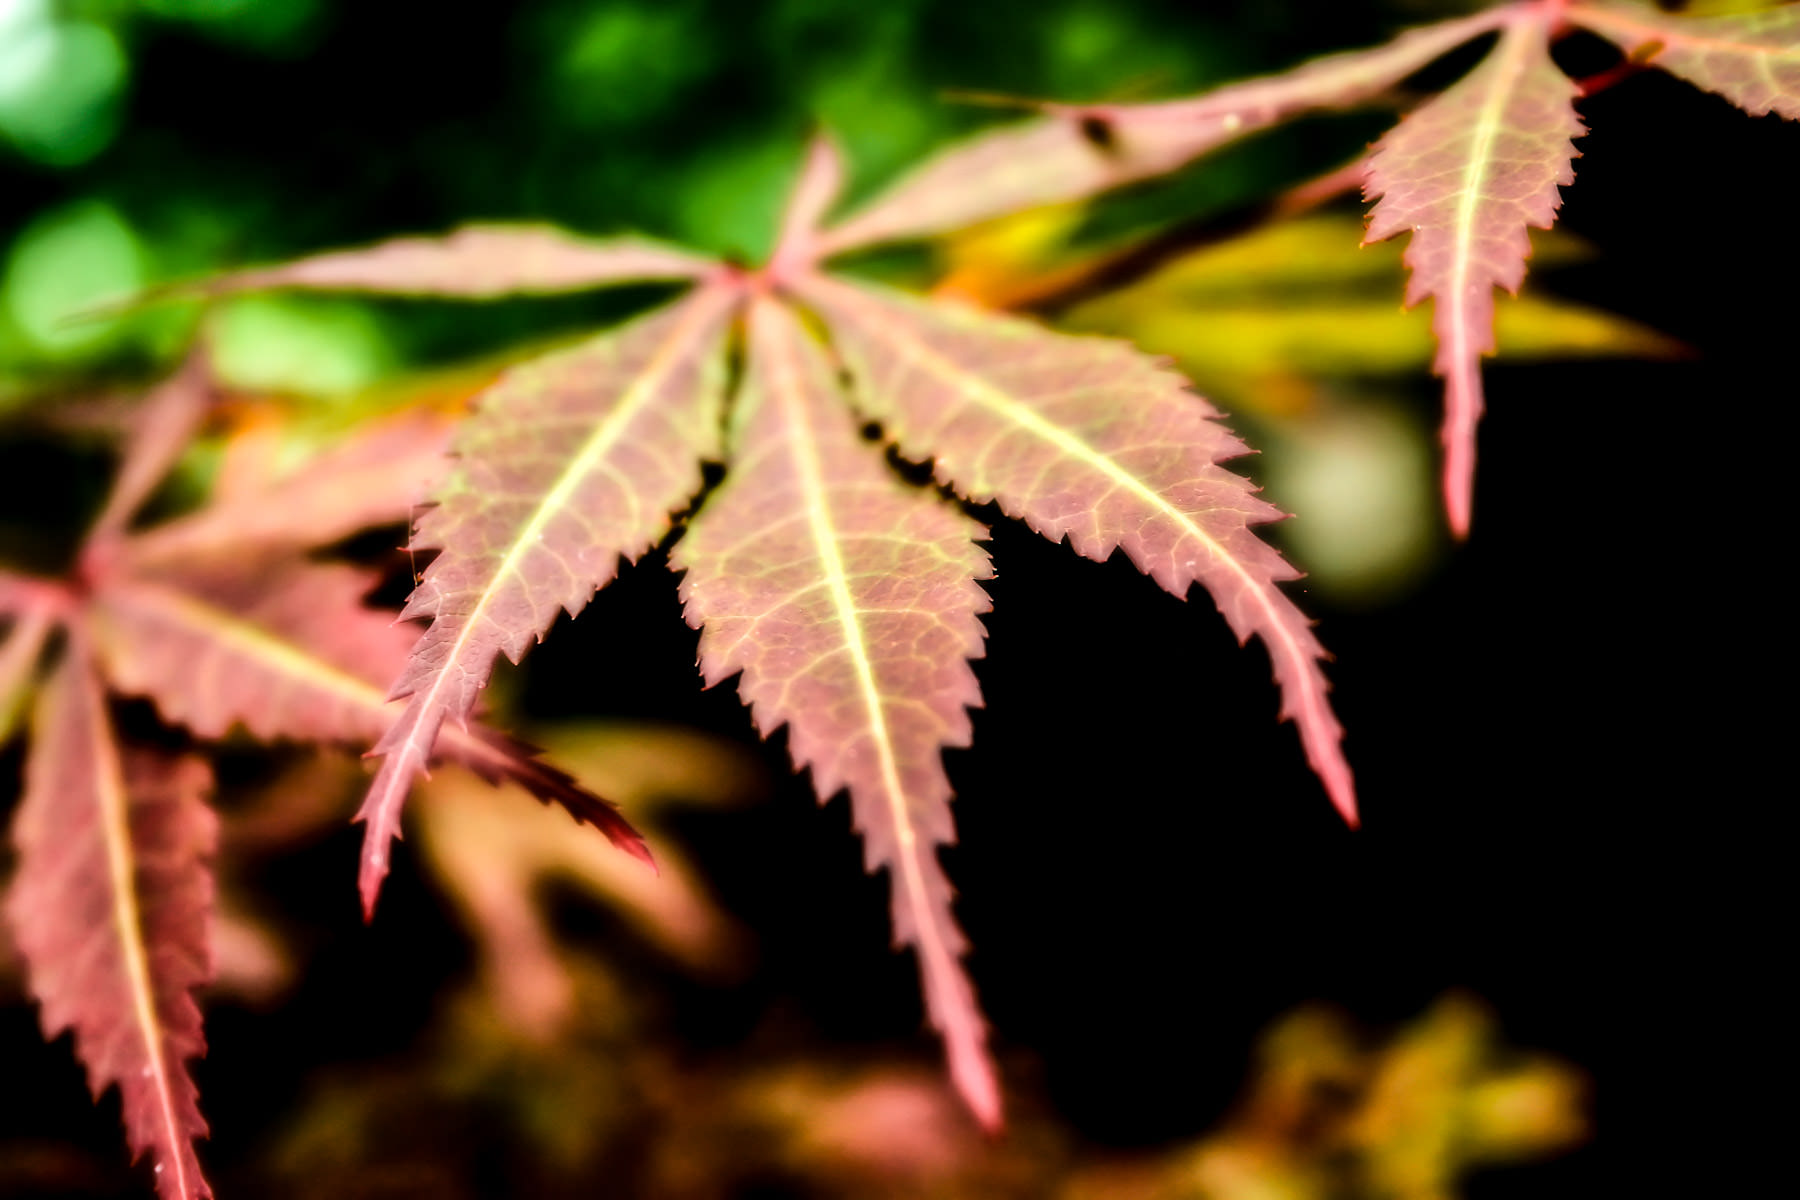 The leaves of a Japanese Maple tree at my mother's house in Tyler, Texas.